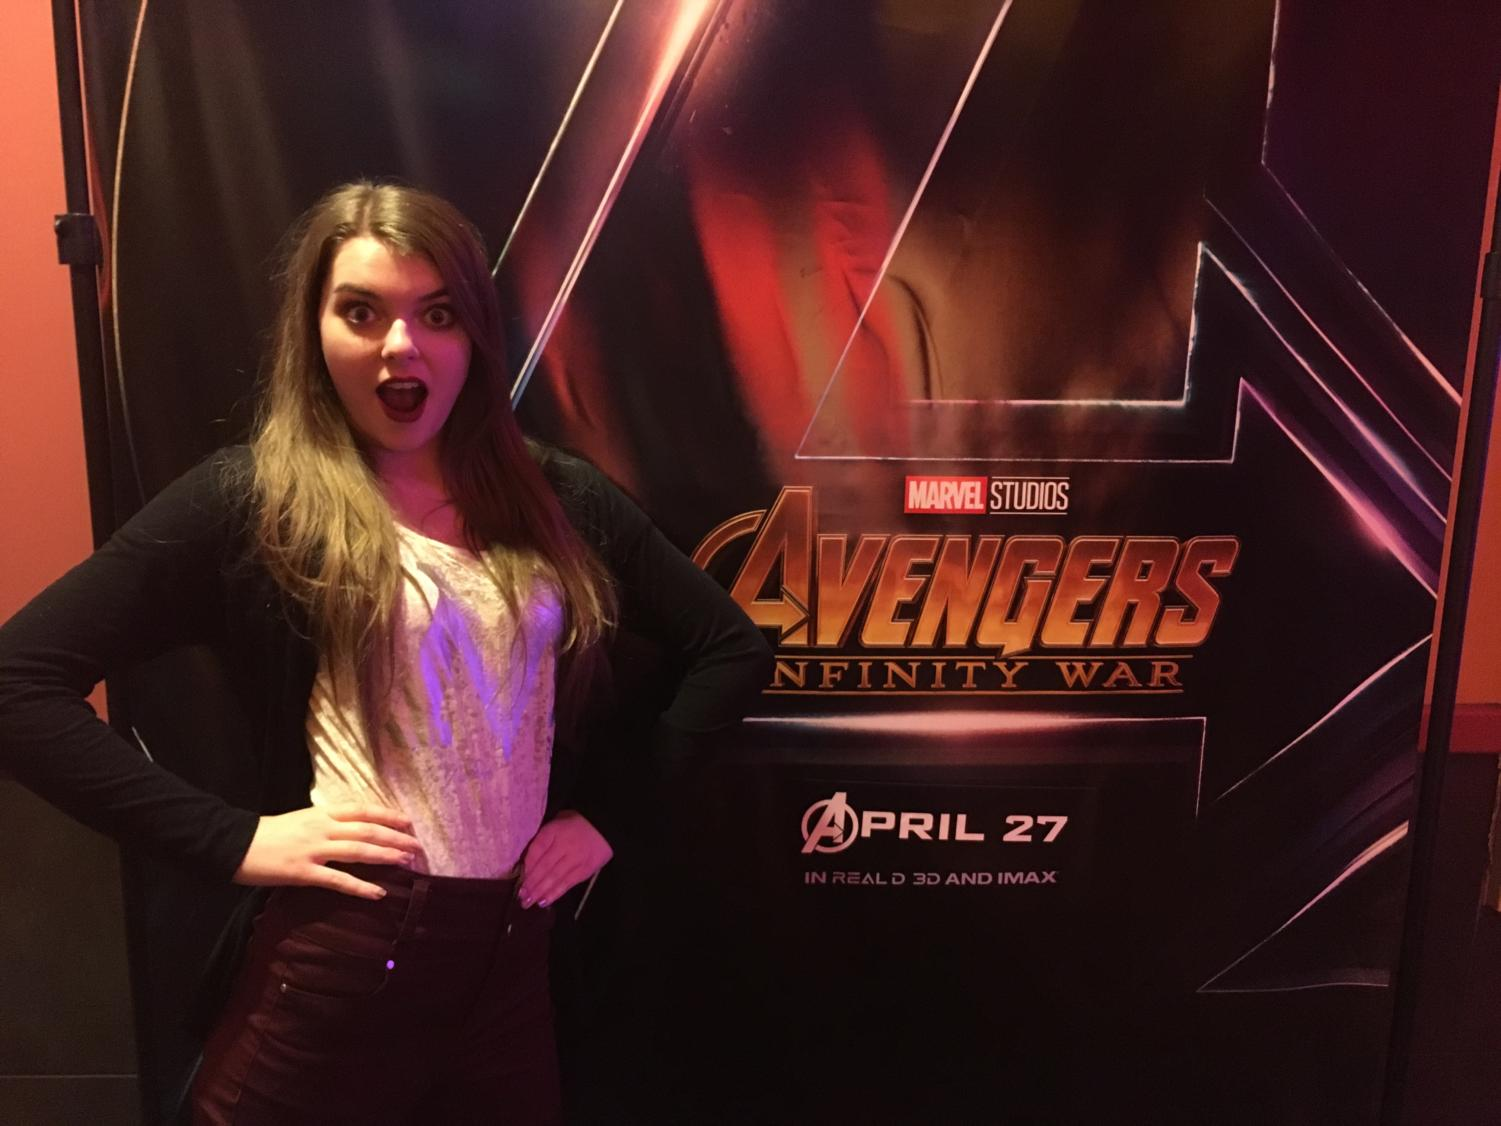 Rachel Bybee is scared but thrilled to watch Avengers: Infinity War.